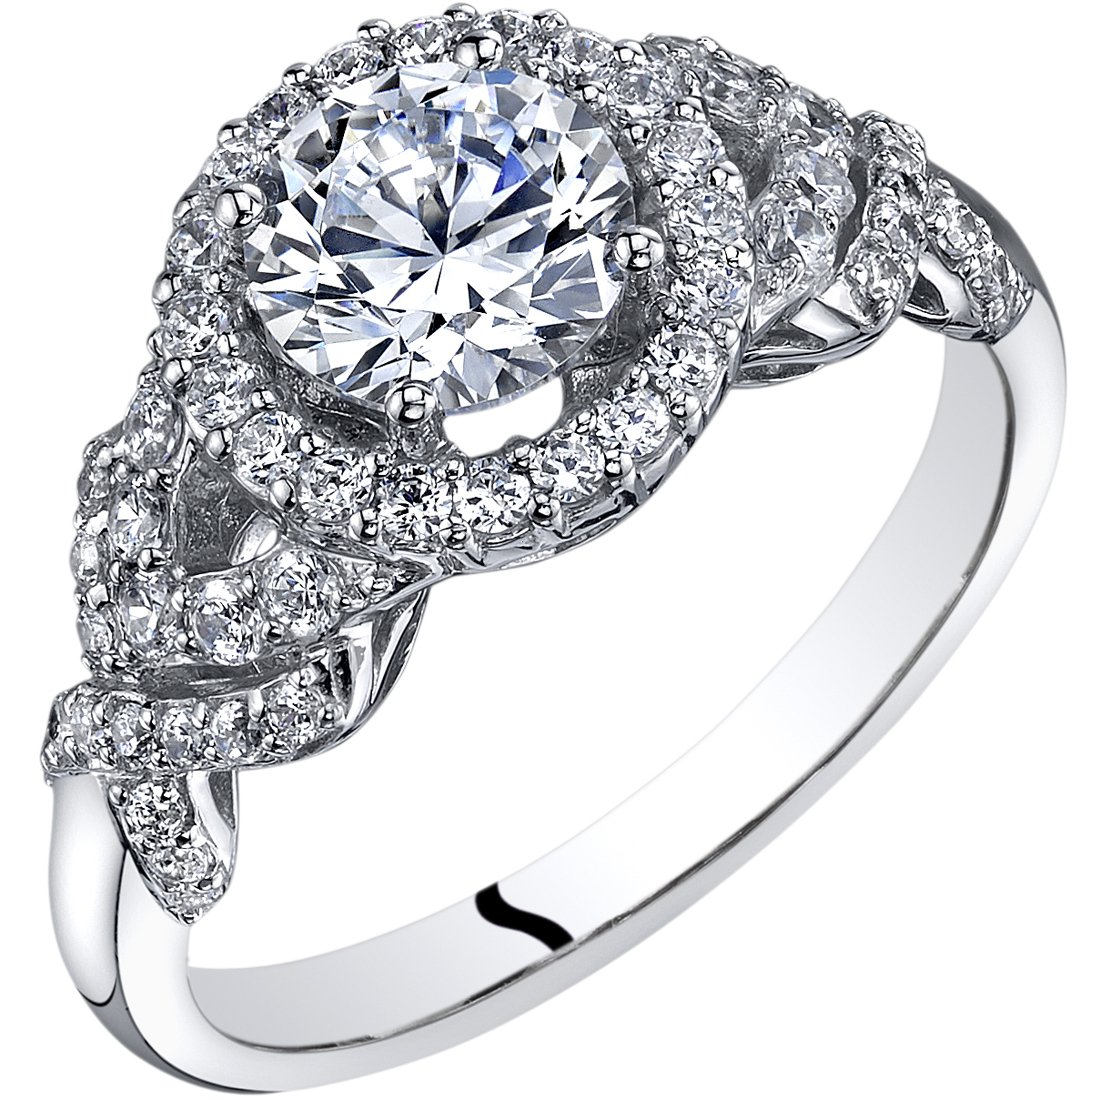 14k White Gold Cubic Zirconia Engagement Ring 1.00 Carat Center Halo Style Size 7 by Peora